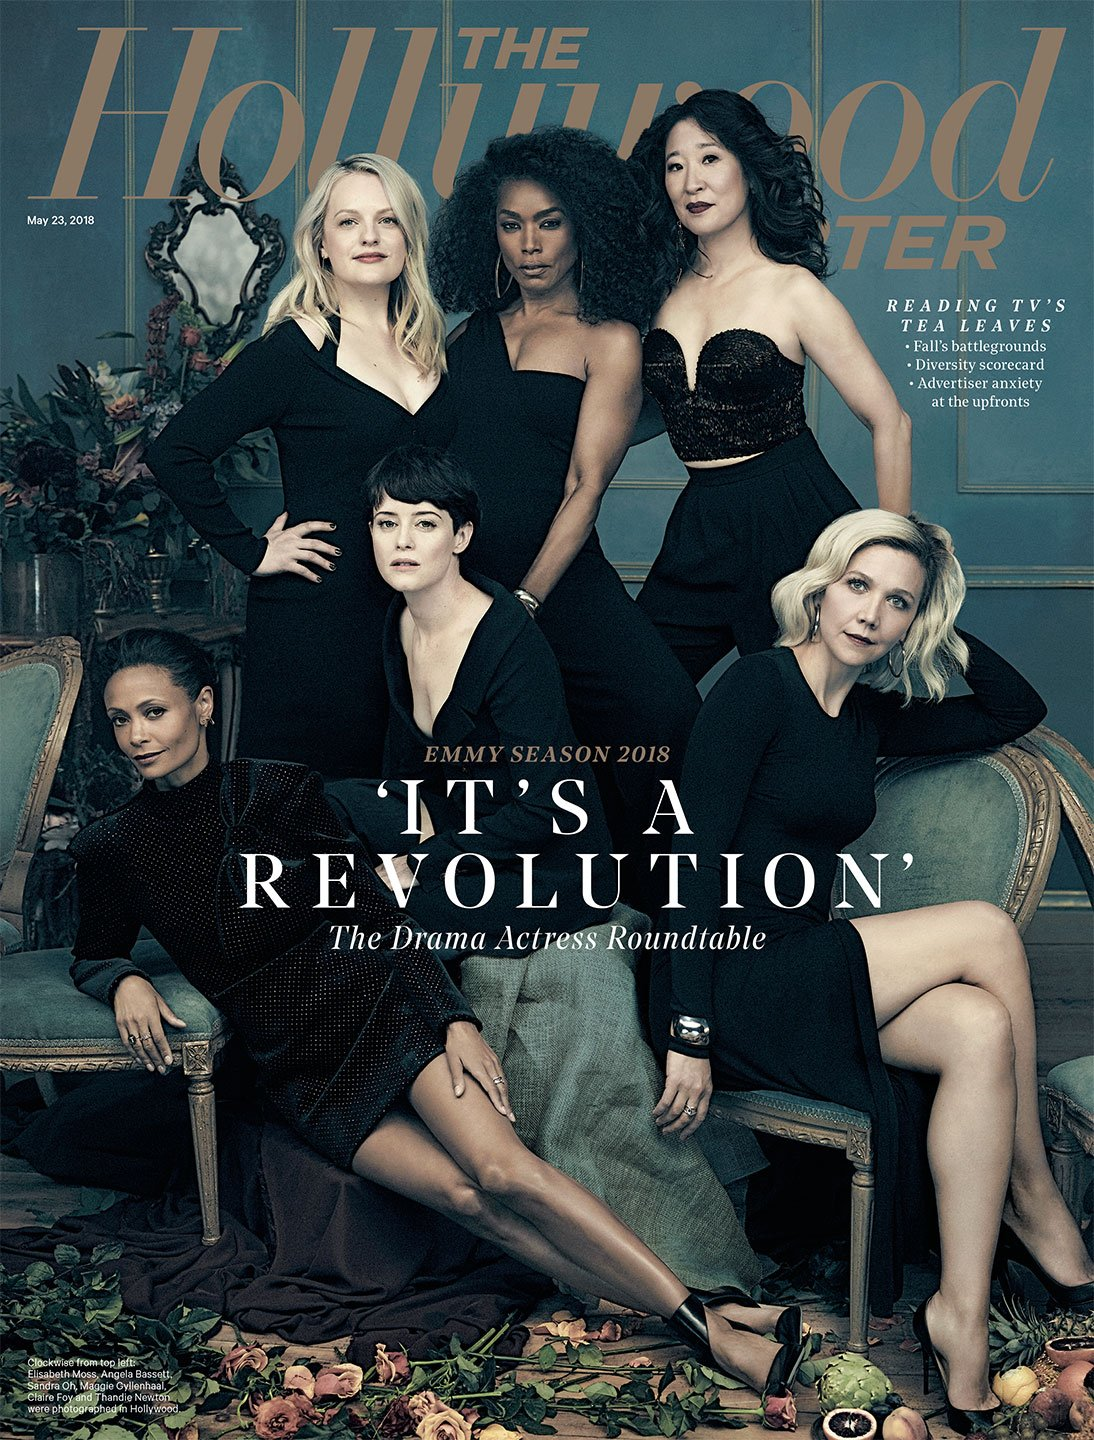 THR Cover: The Actress Roundtable with Claire Foy, Elisabeth Moss, @thandienewton and more https://t.co/mmzBJsiRFe https://t.co/ti97u2uSqW